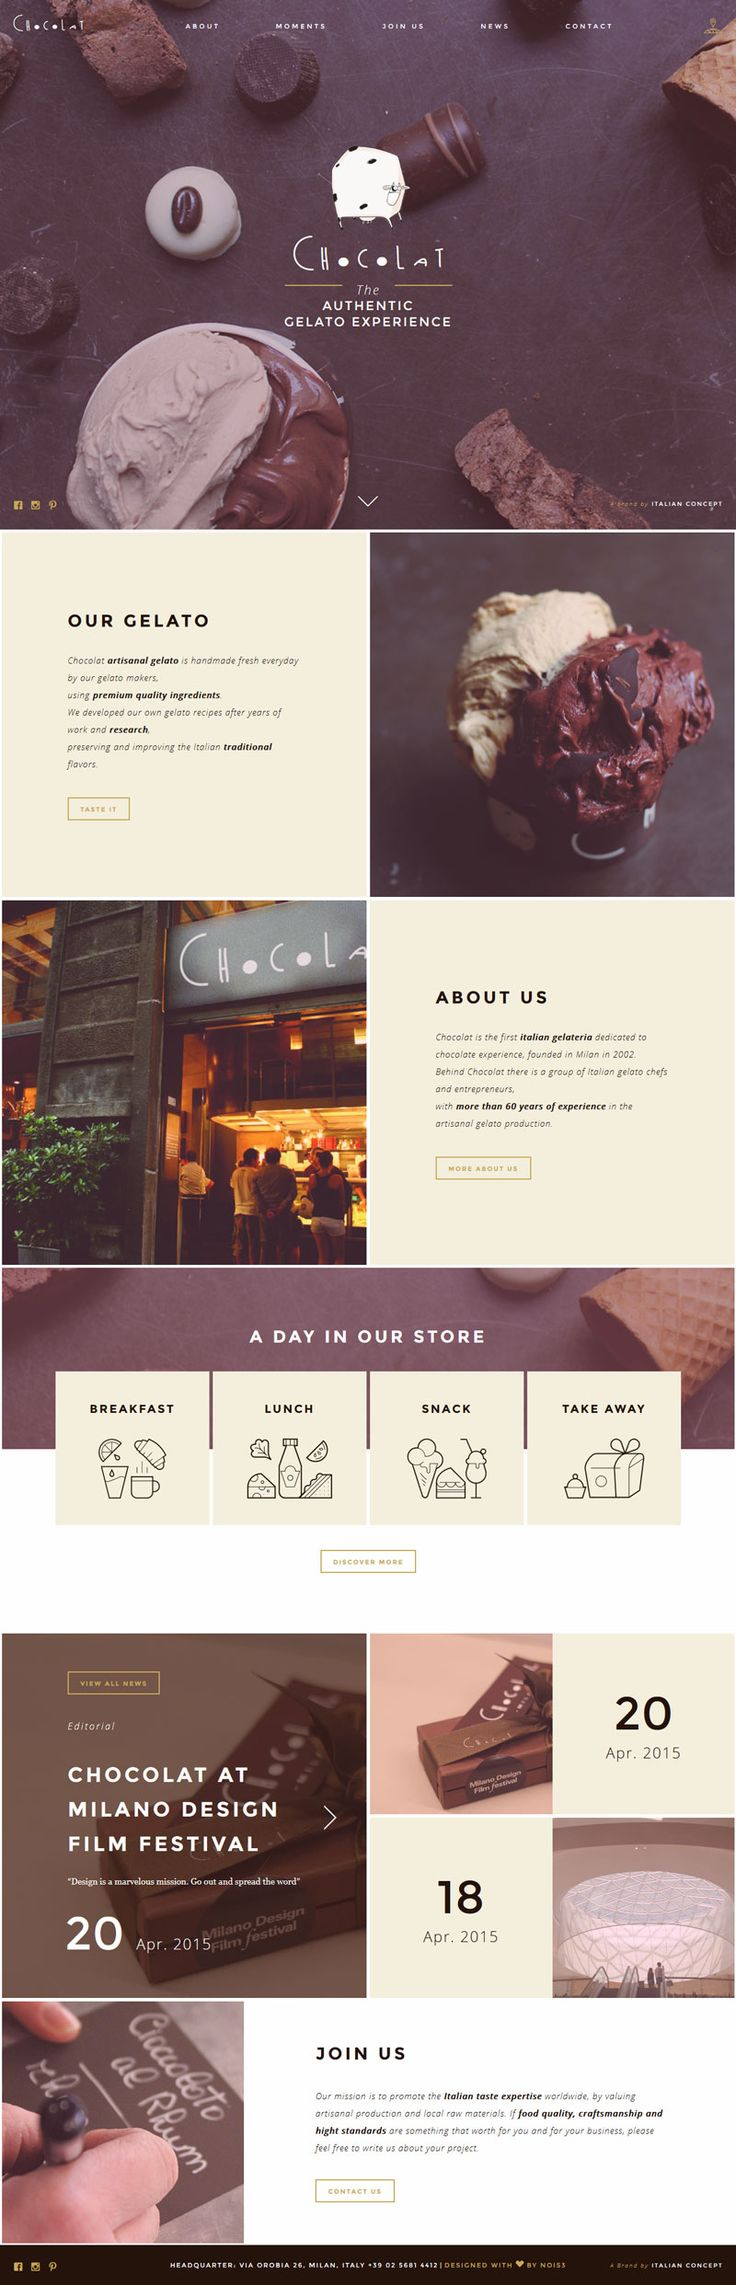 Chocolat, creative shop design #webdesign #websitedesign 통일감 있는 색 차분한 느낌